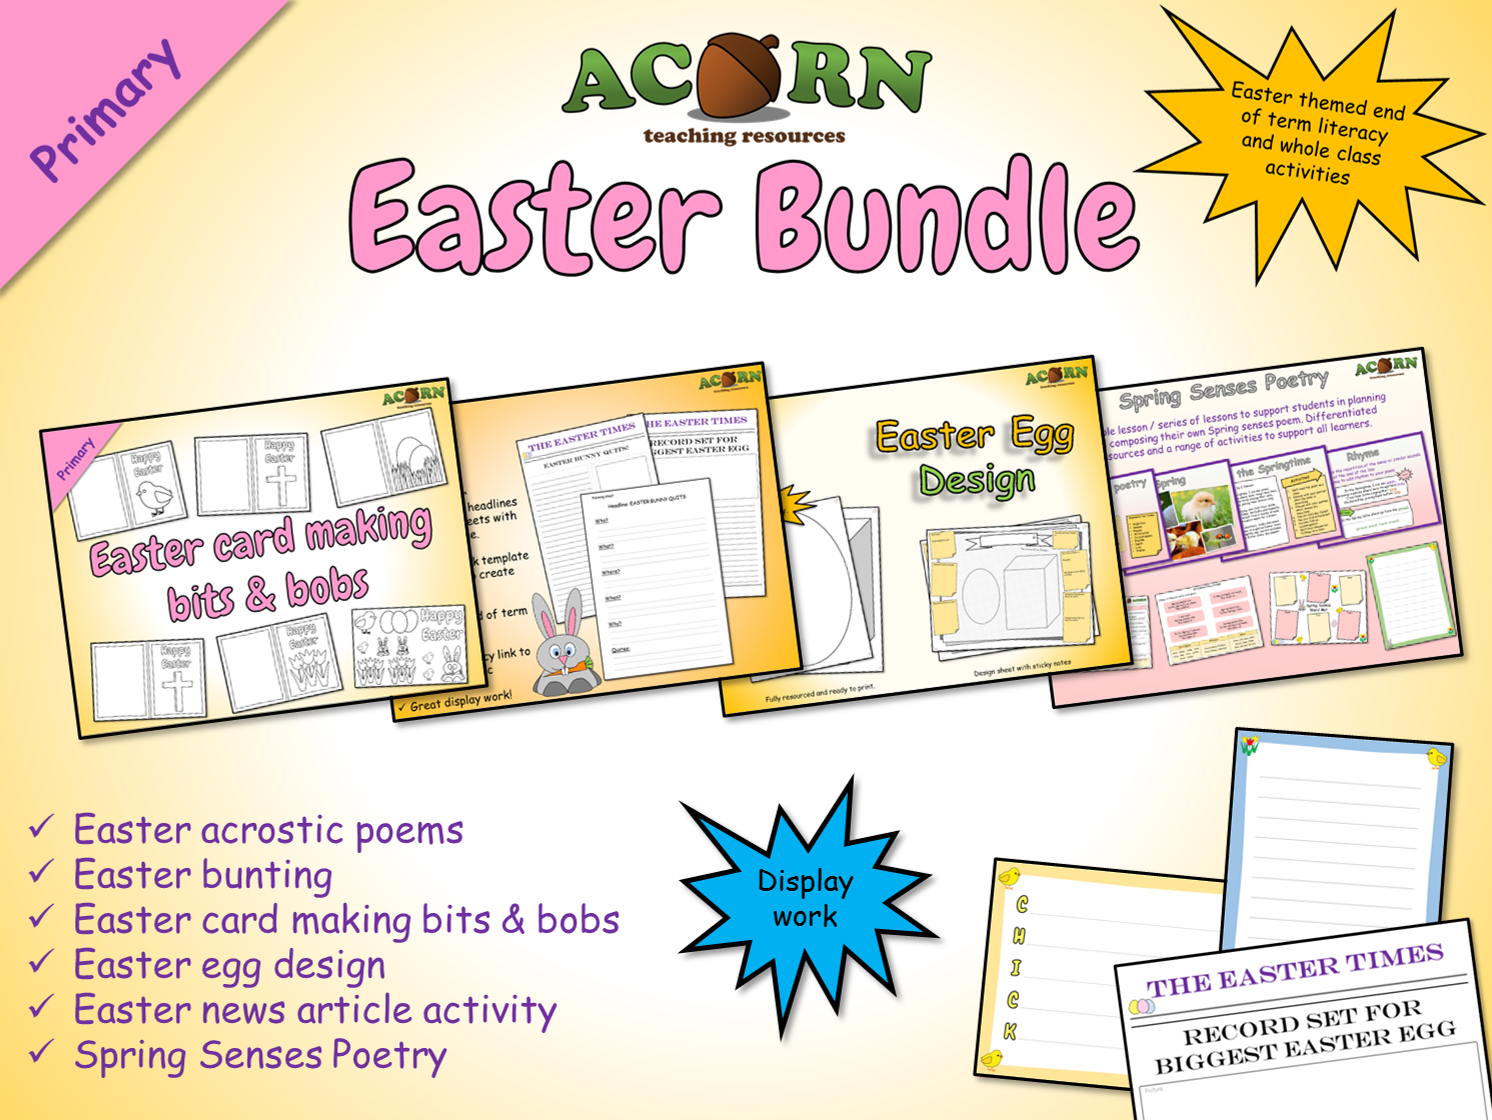 The Acorn Easter Bundle